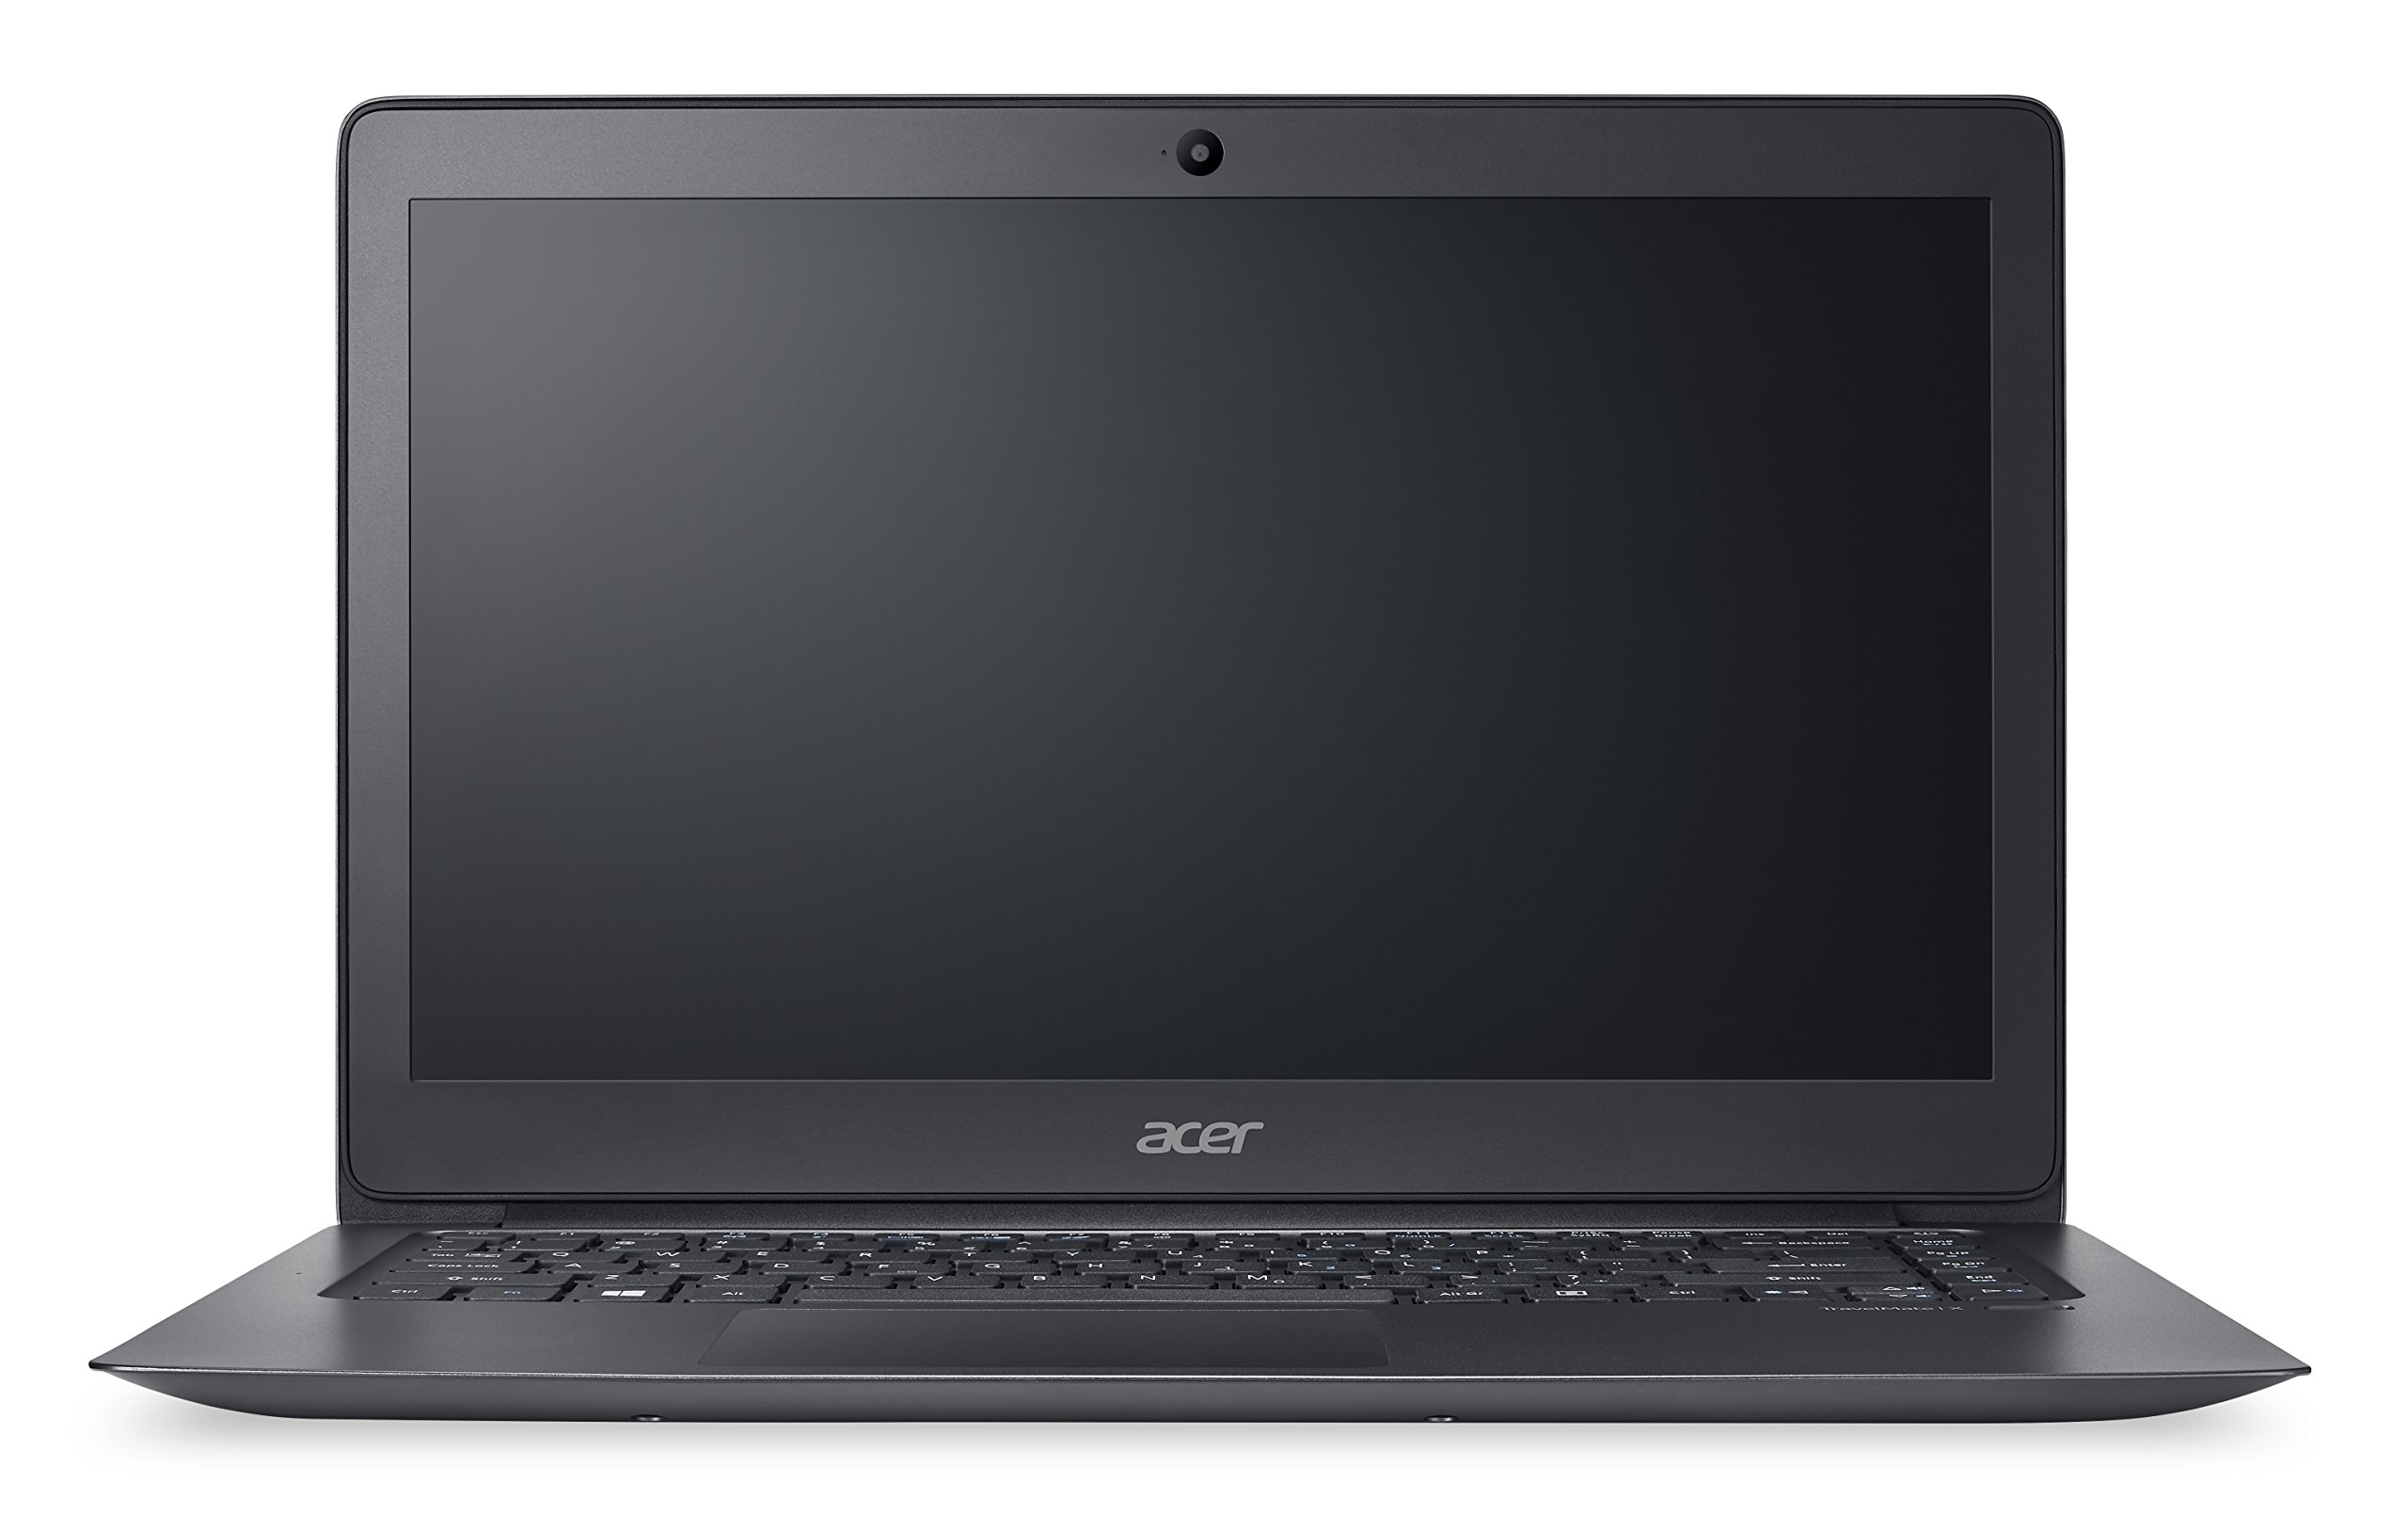 Acer Travel Mate NX.VDFAA.009;TMX349-M-757X 14'' Traditional Laptop by Acer